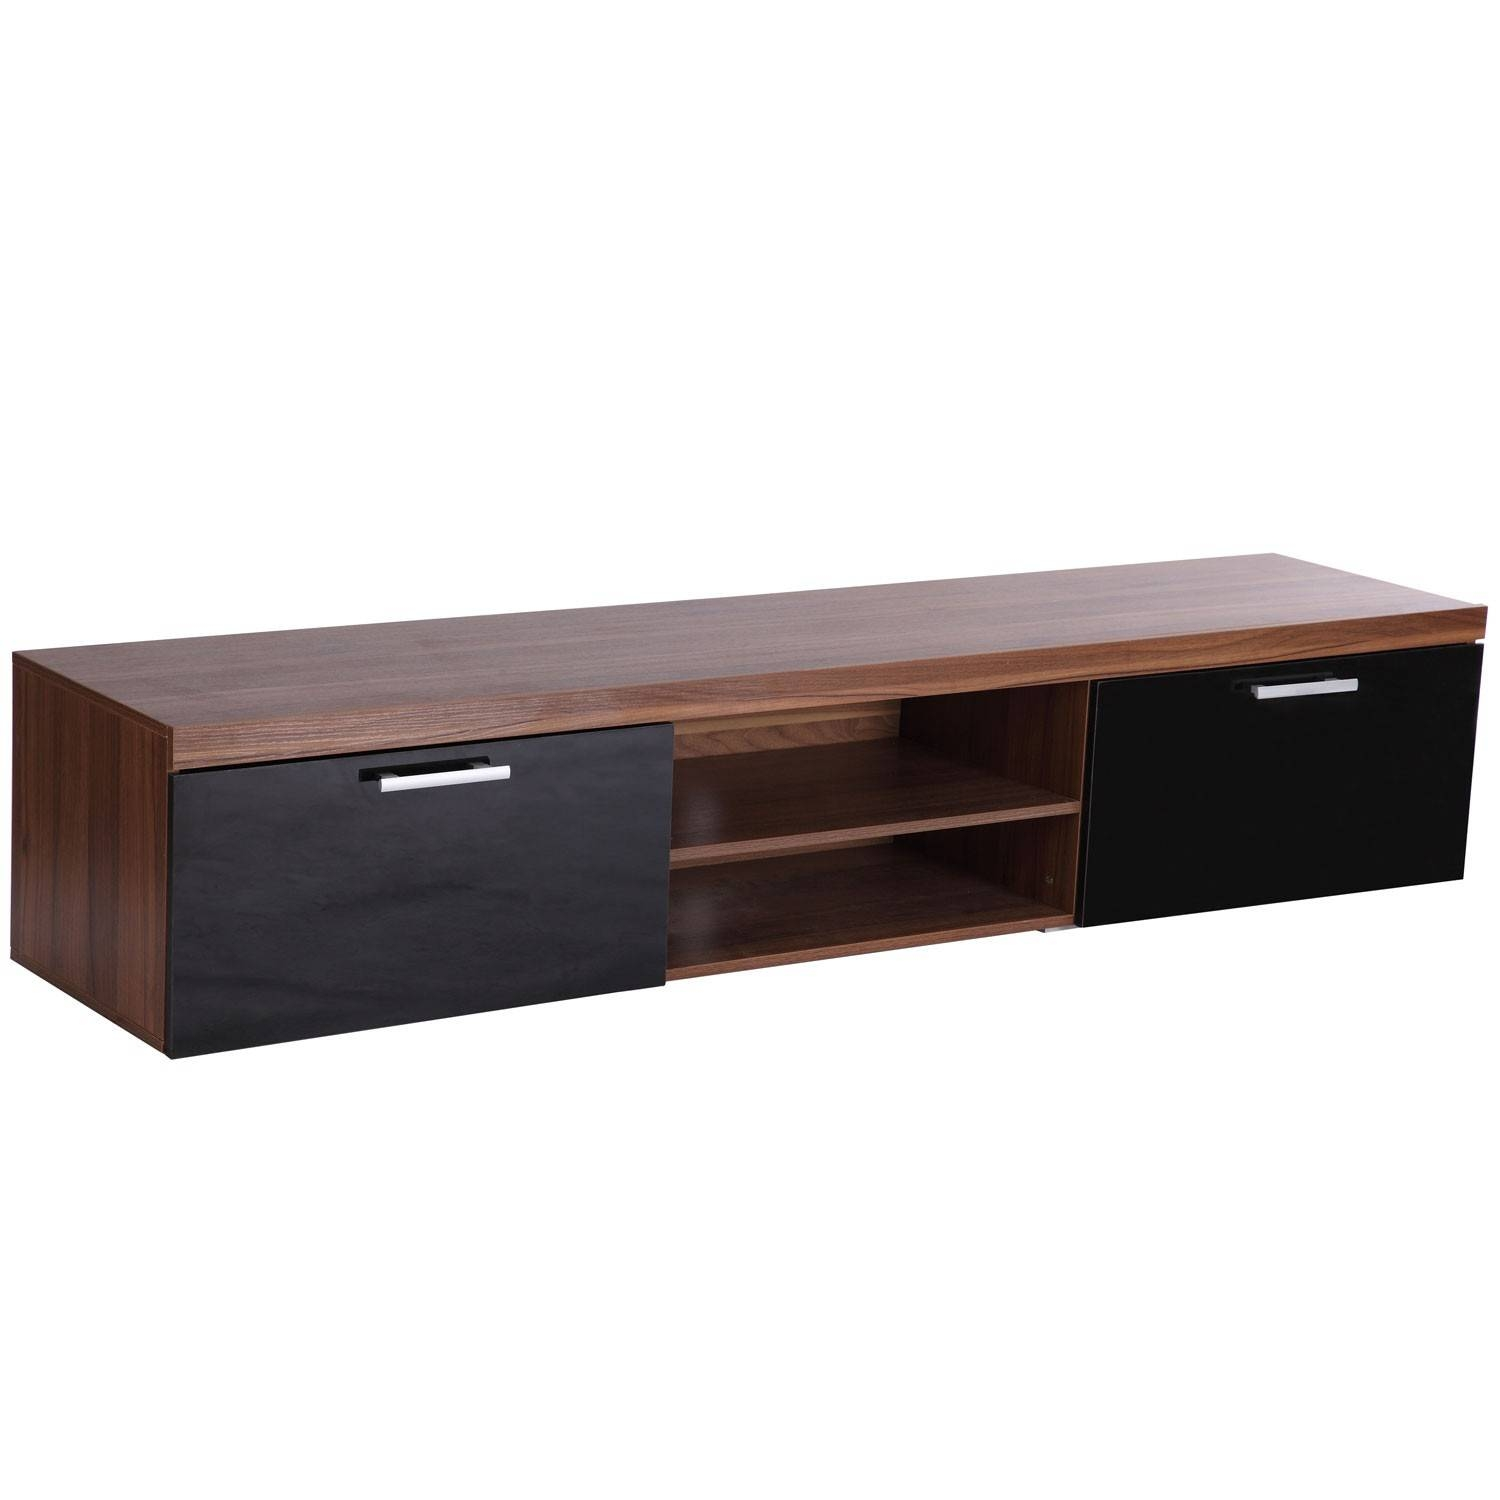 15 Best Collection Of Walnut Tv Cabinets With Doors